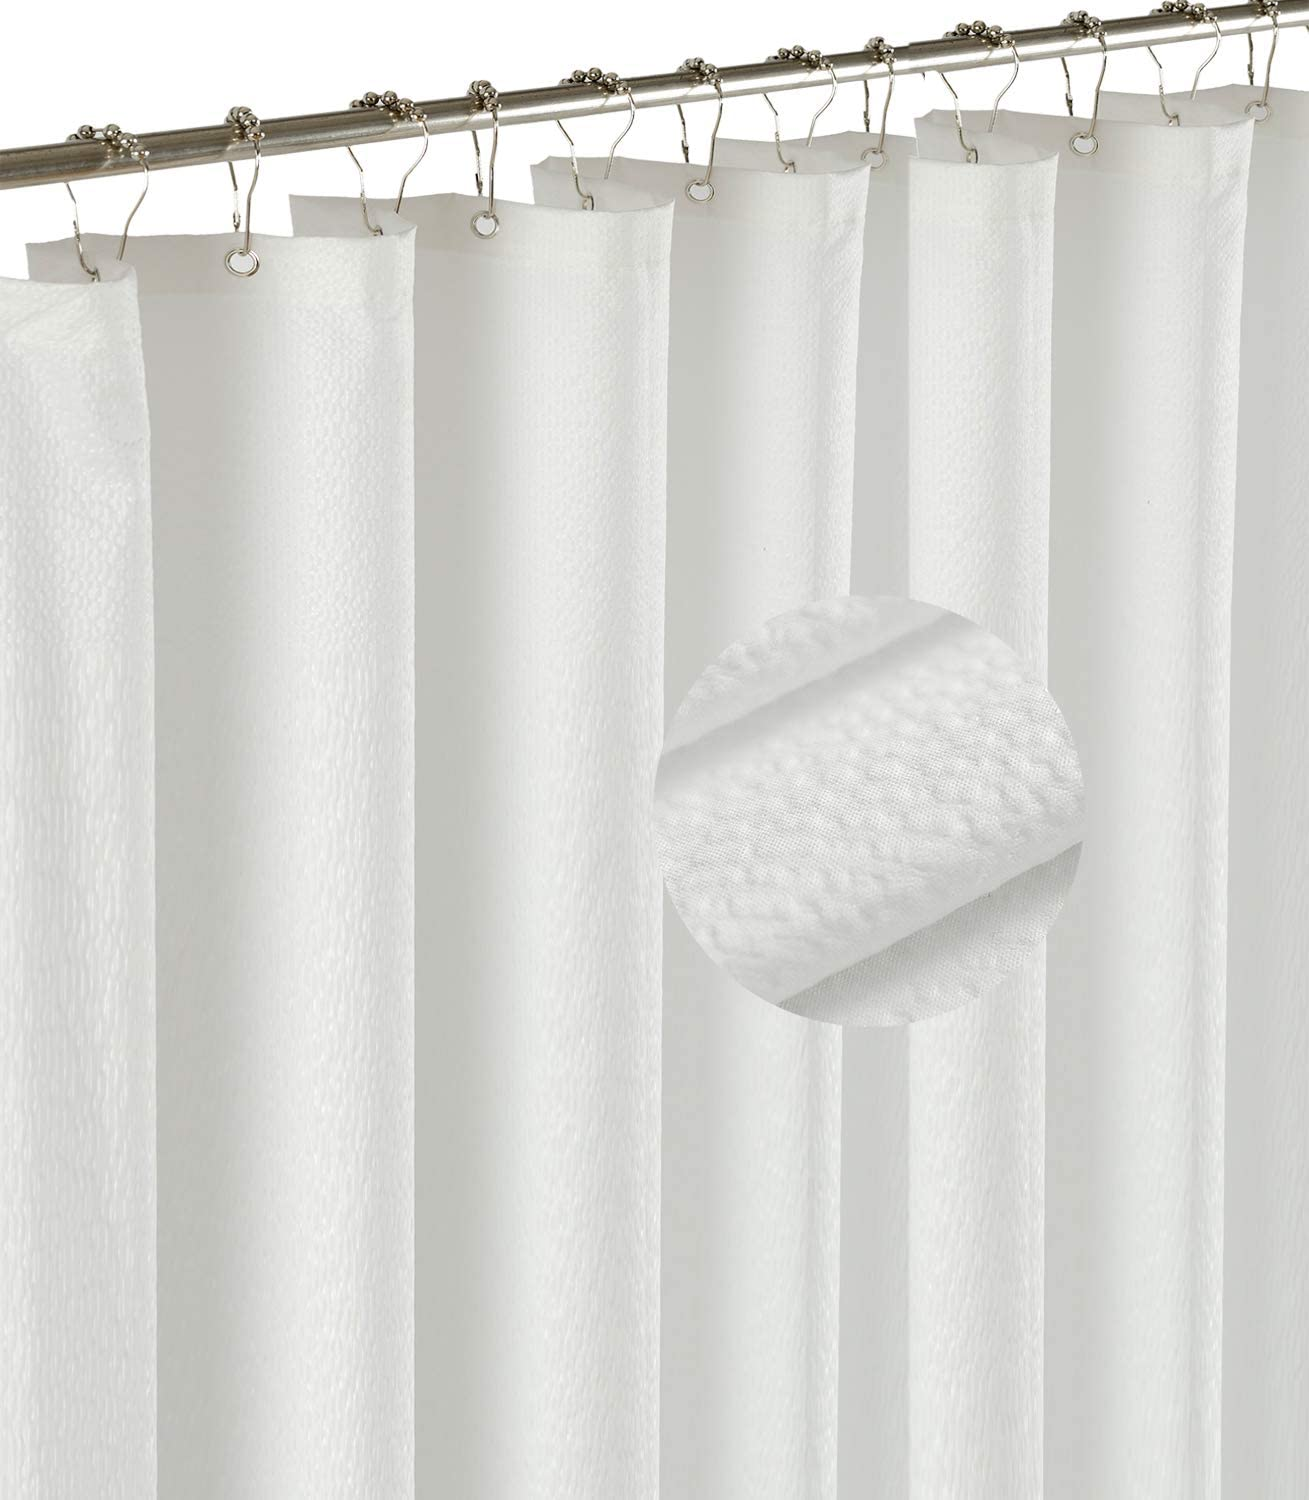 Barossa Design Soft Light-Weight Microfiber Fabric Shower Liner or Curtain with Embossed Dots, Hotel Quality, Machine Washable, Water Repellent, White, 70 x 72 inches